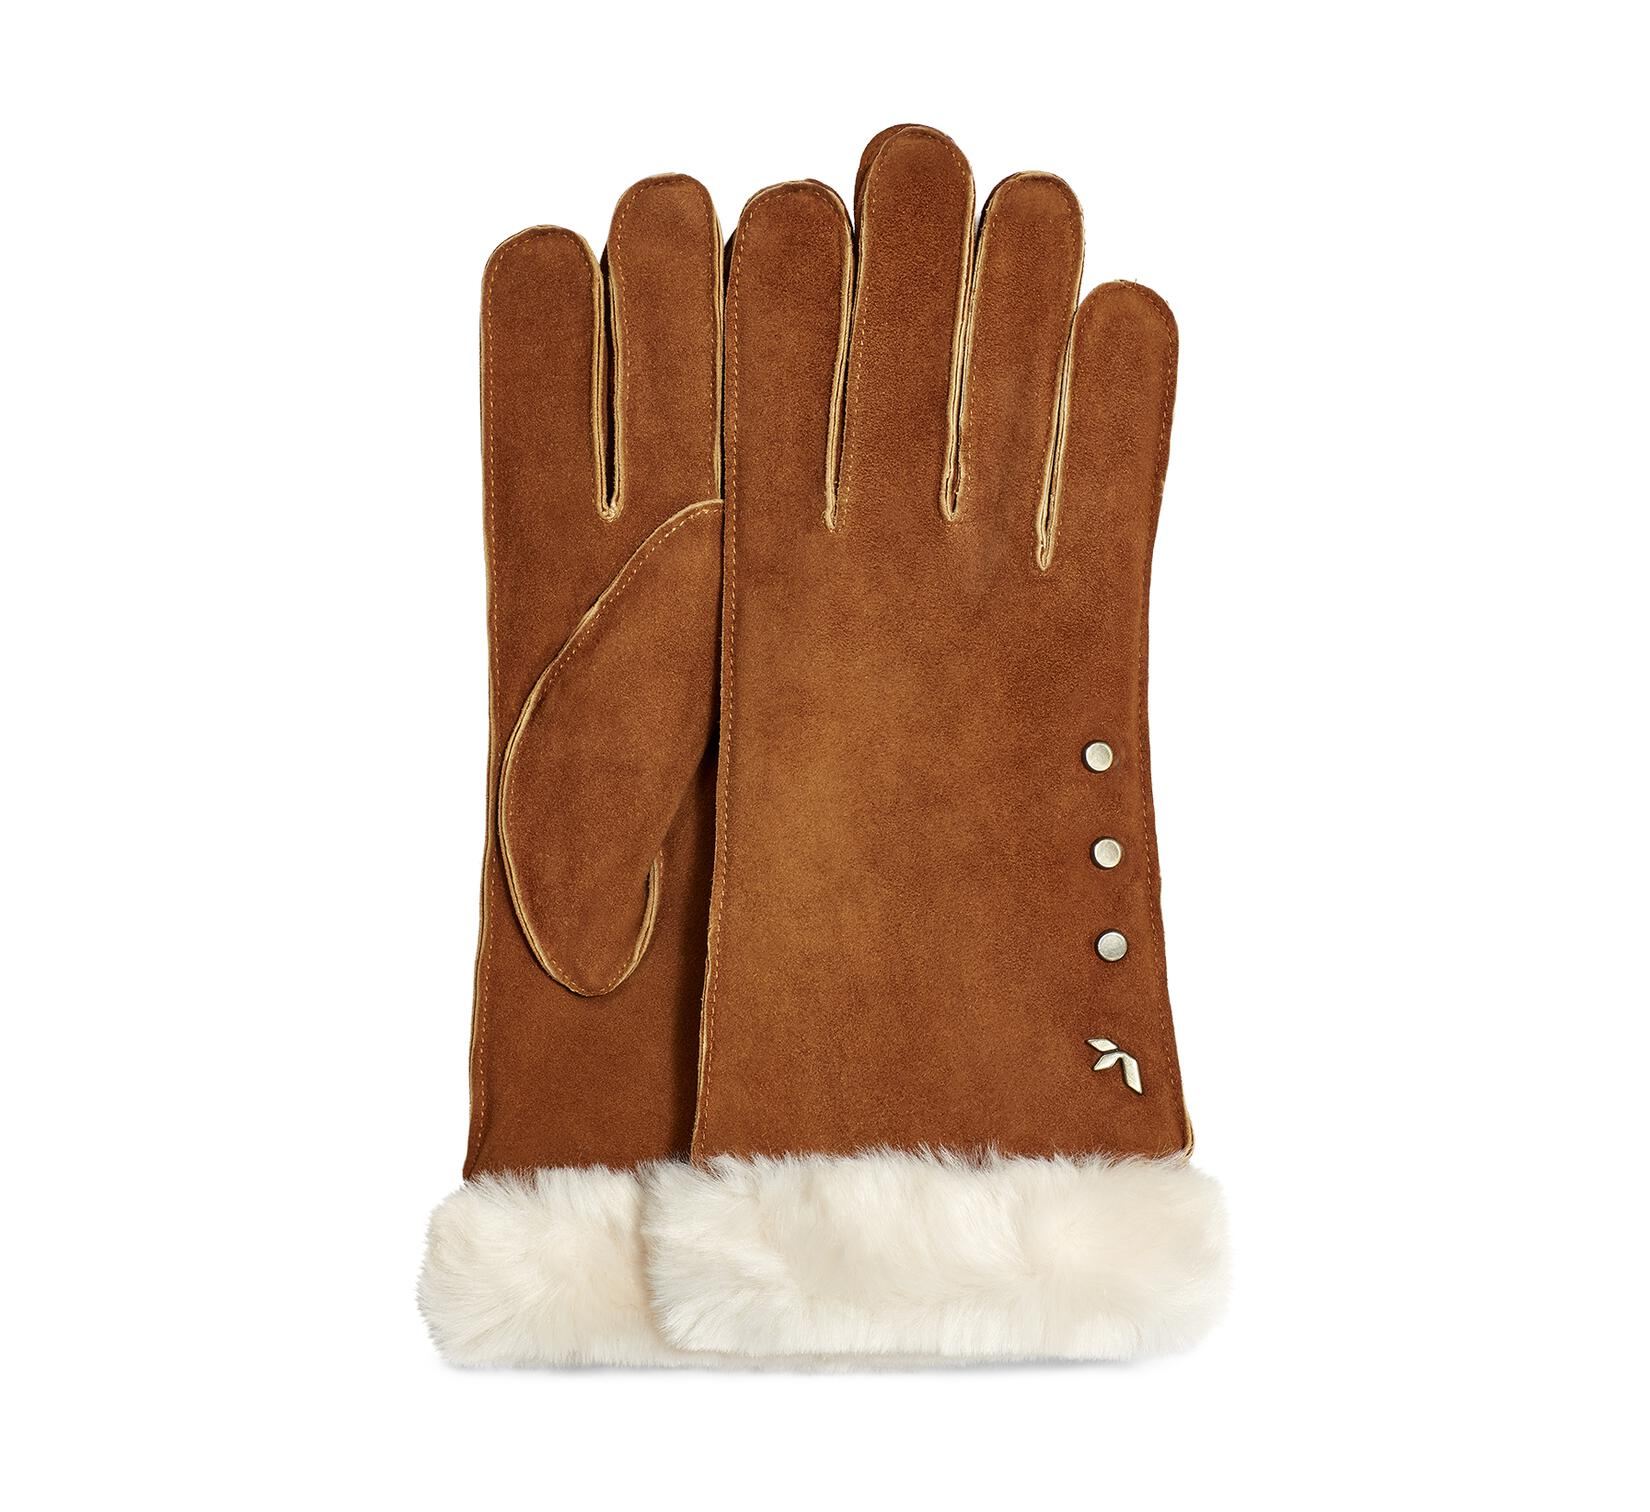 Studded Glove with Faux Fur Cuff